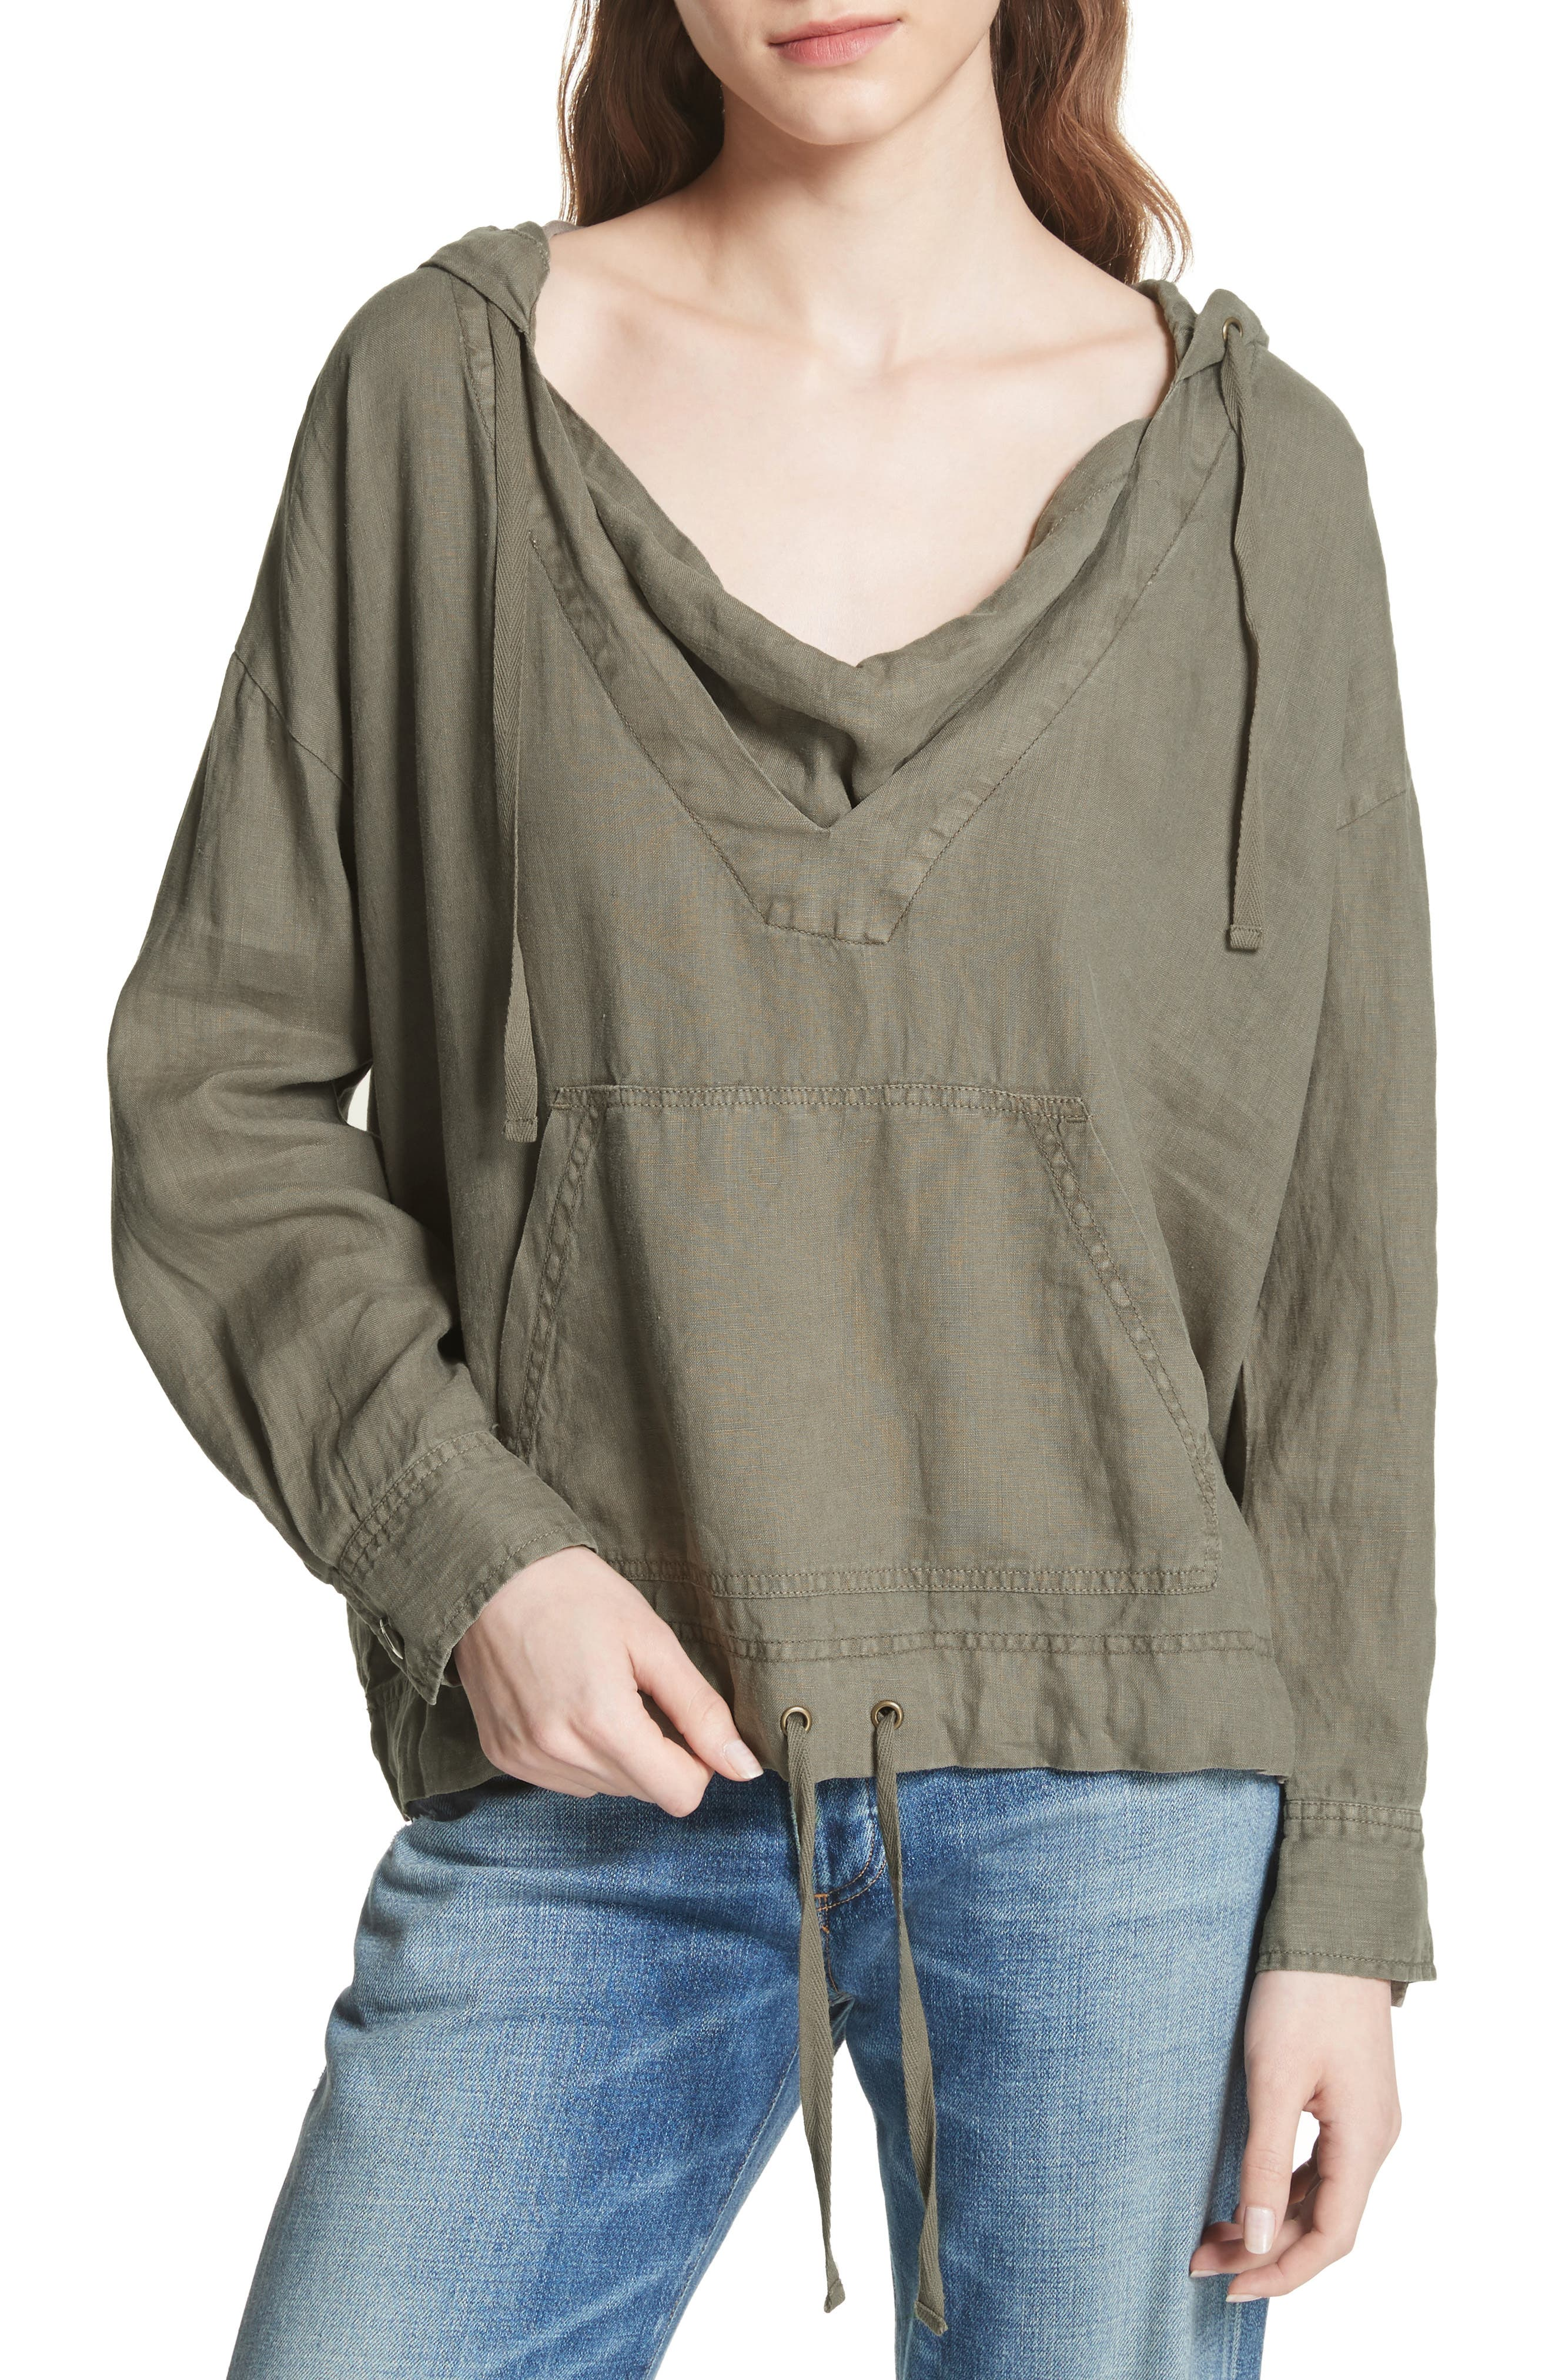 Dalal Linen Hoodie Top,                             Main thumbnail 1, color,